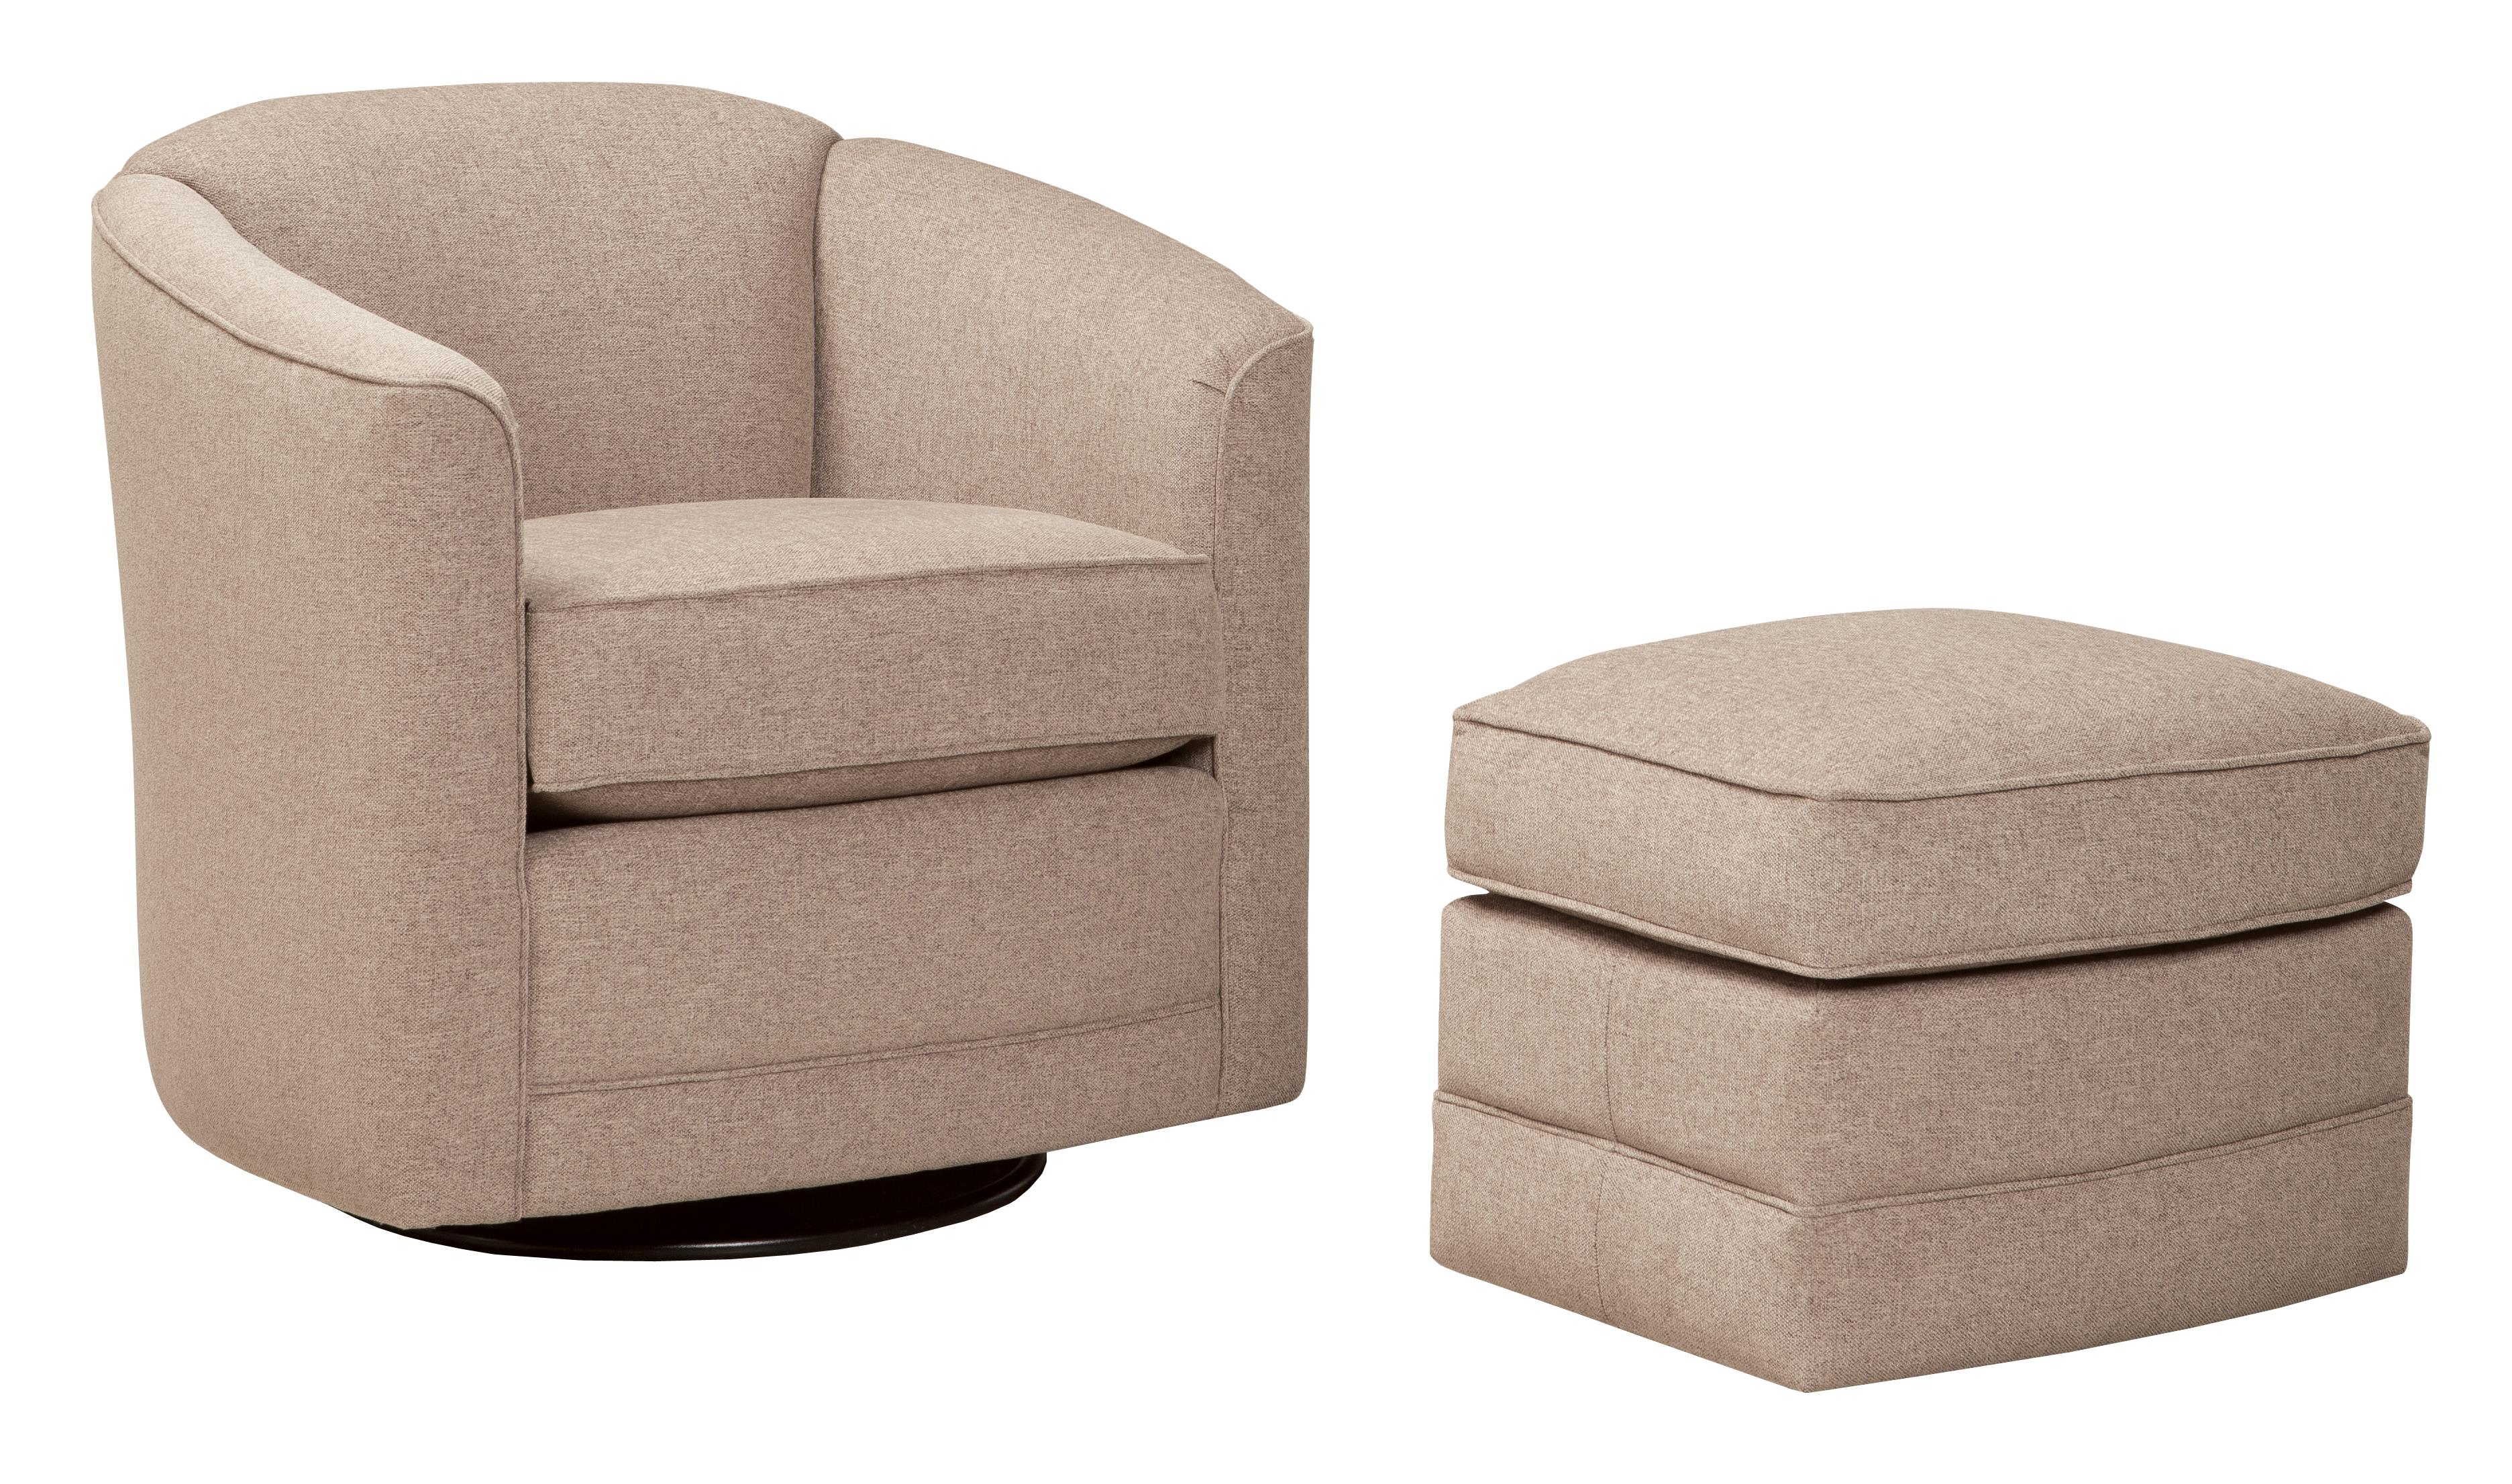 506 Swivel Chair and Ottoman Set by Smith Brothers at Pilgrim Furniture City